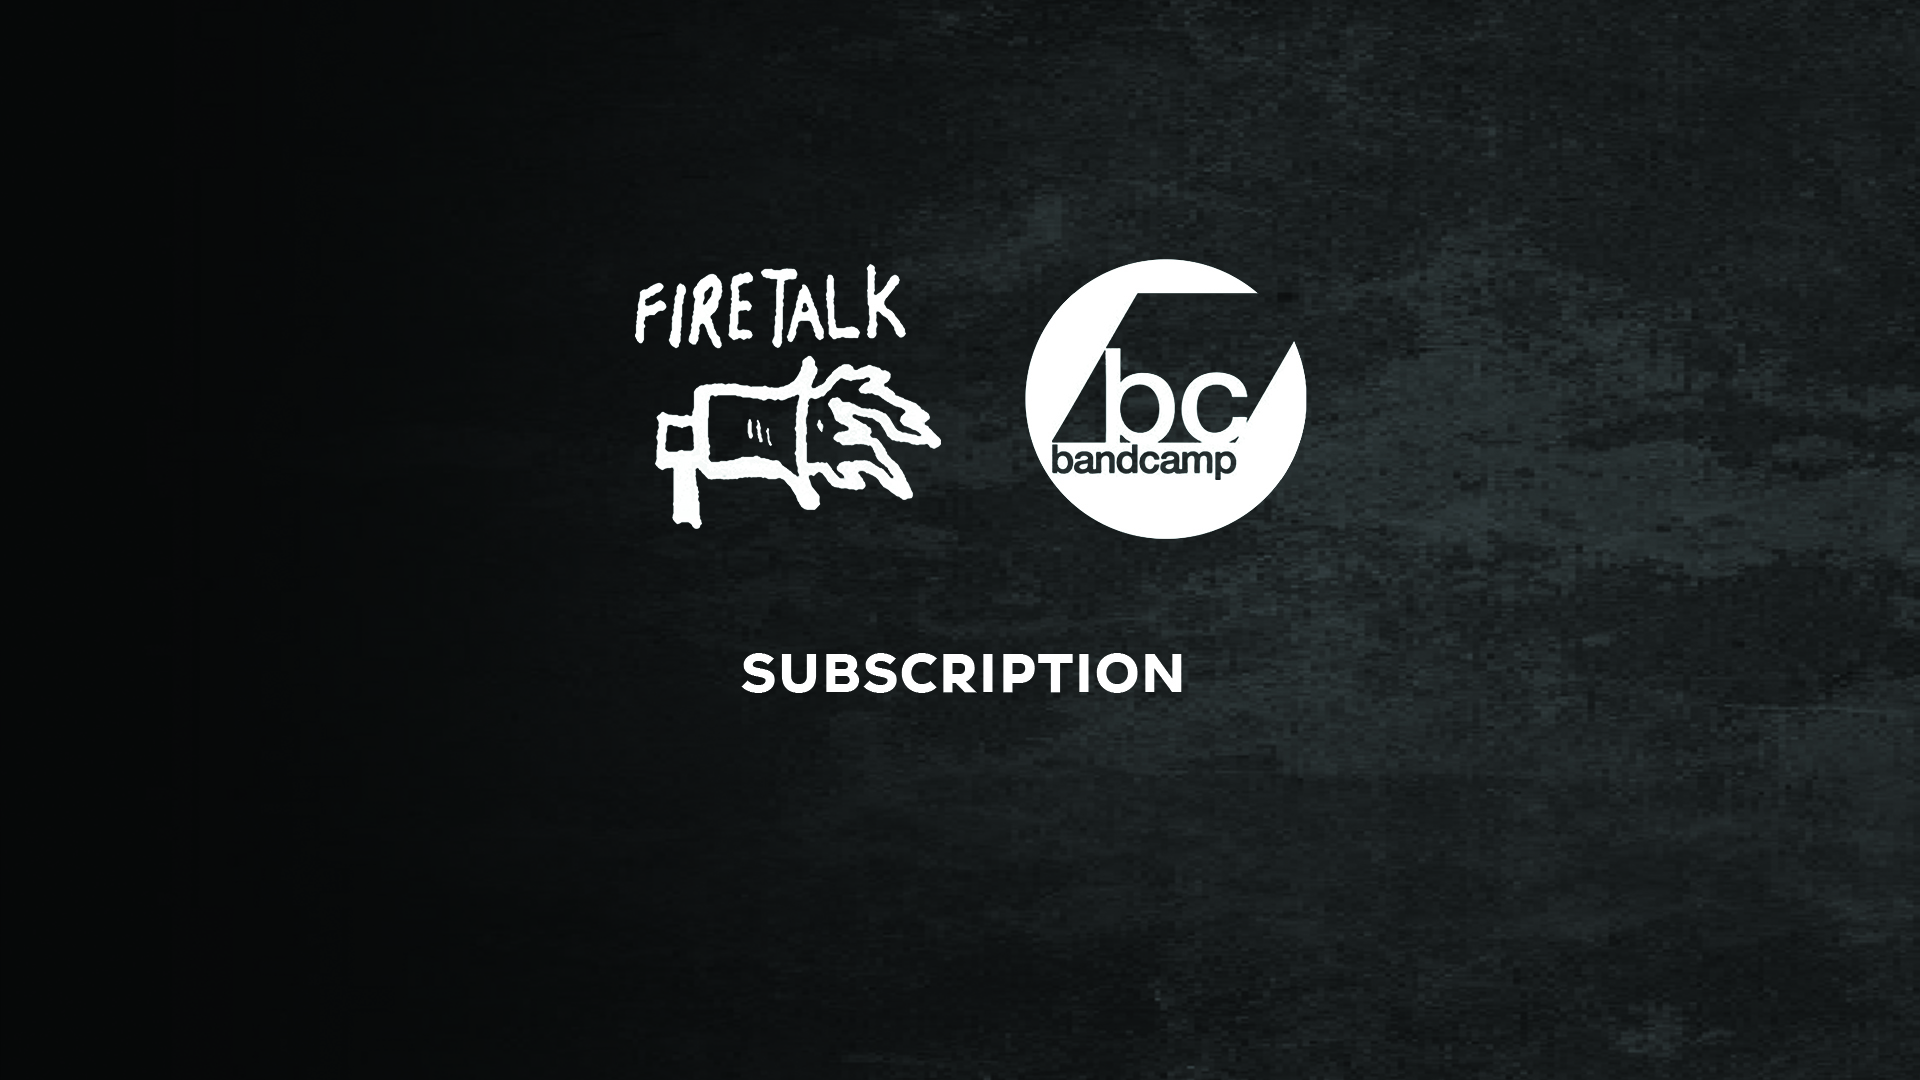 firetalk_bcamp_subscription_banner.jpg